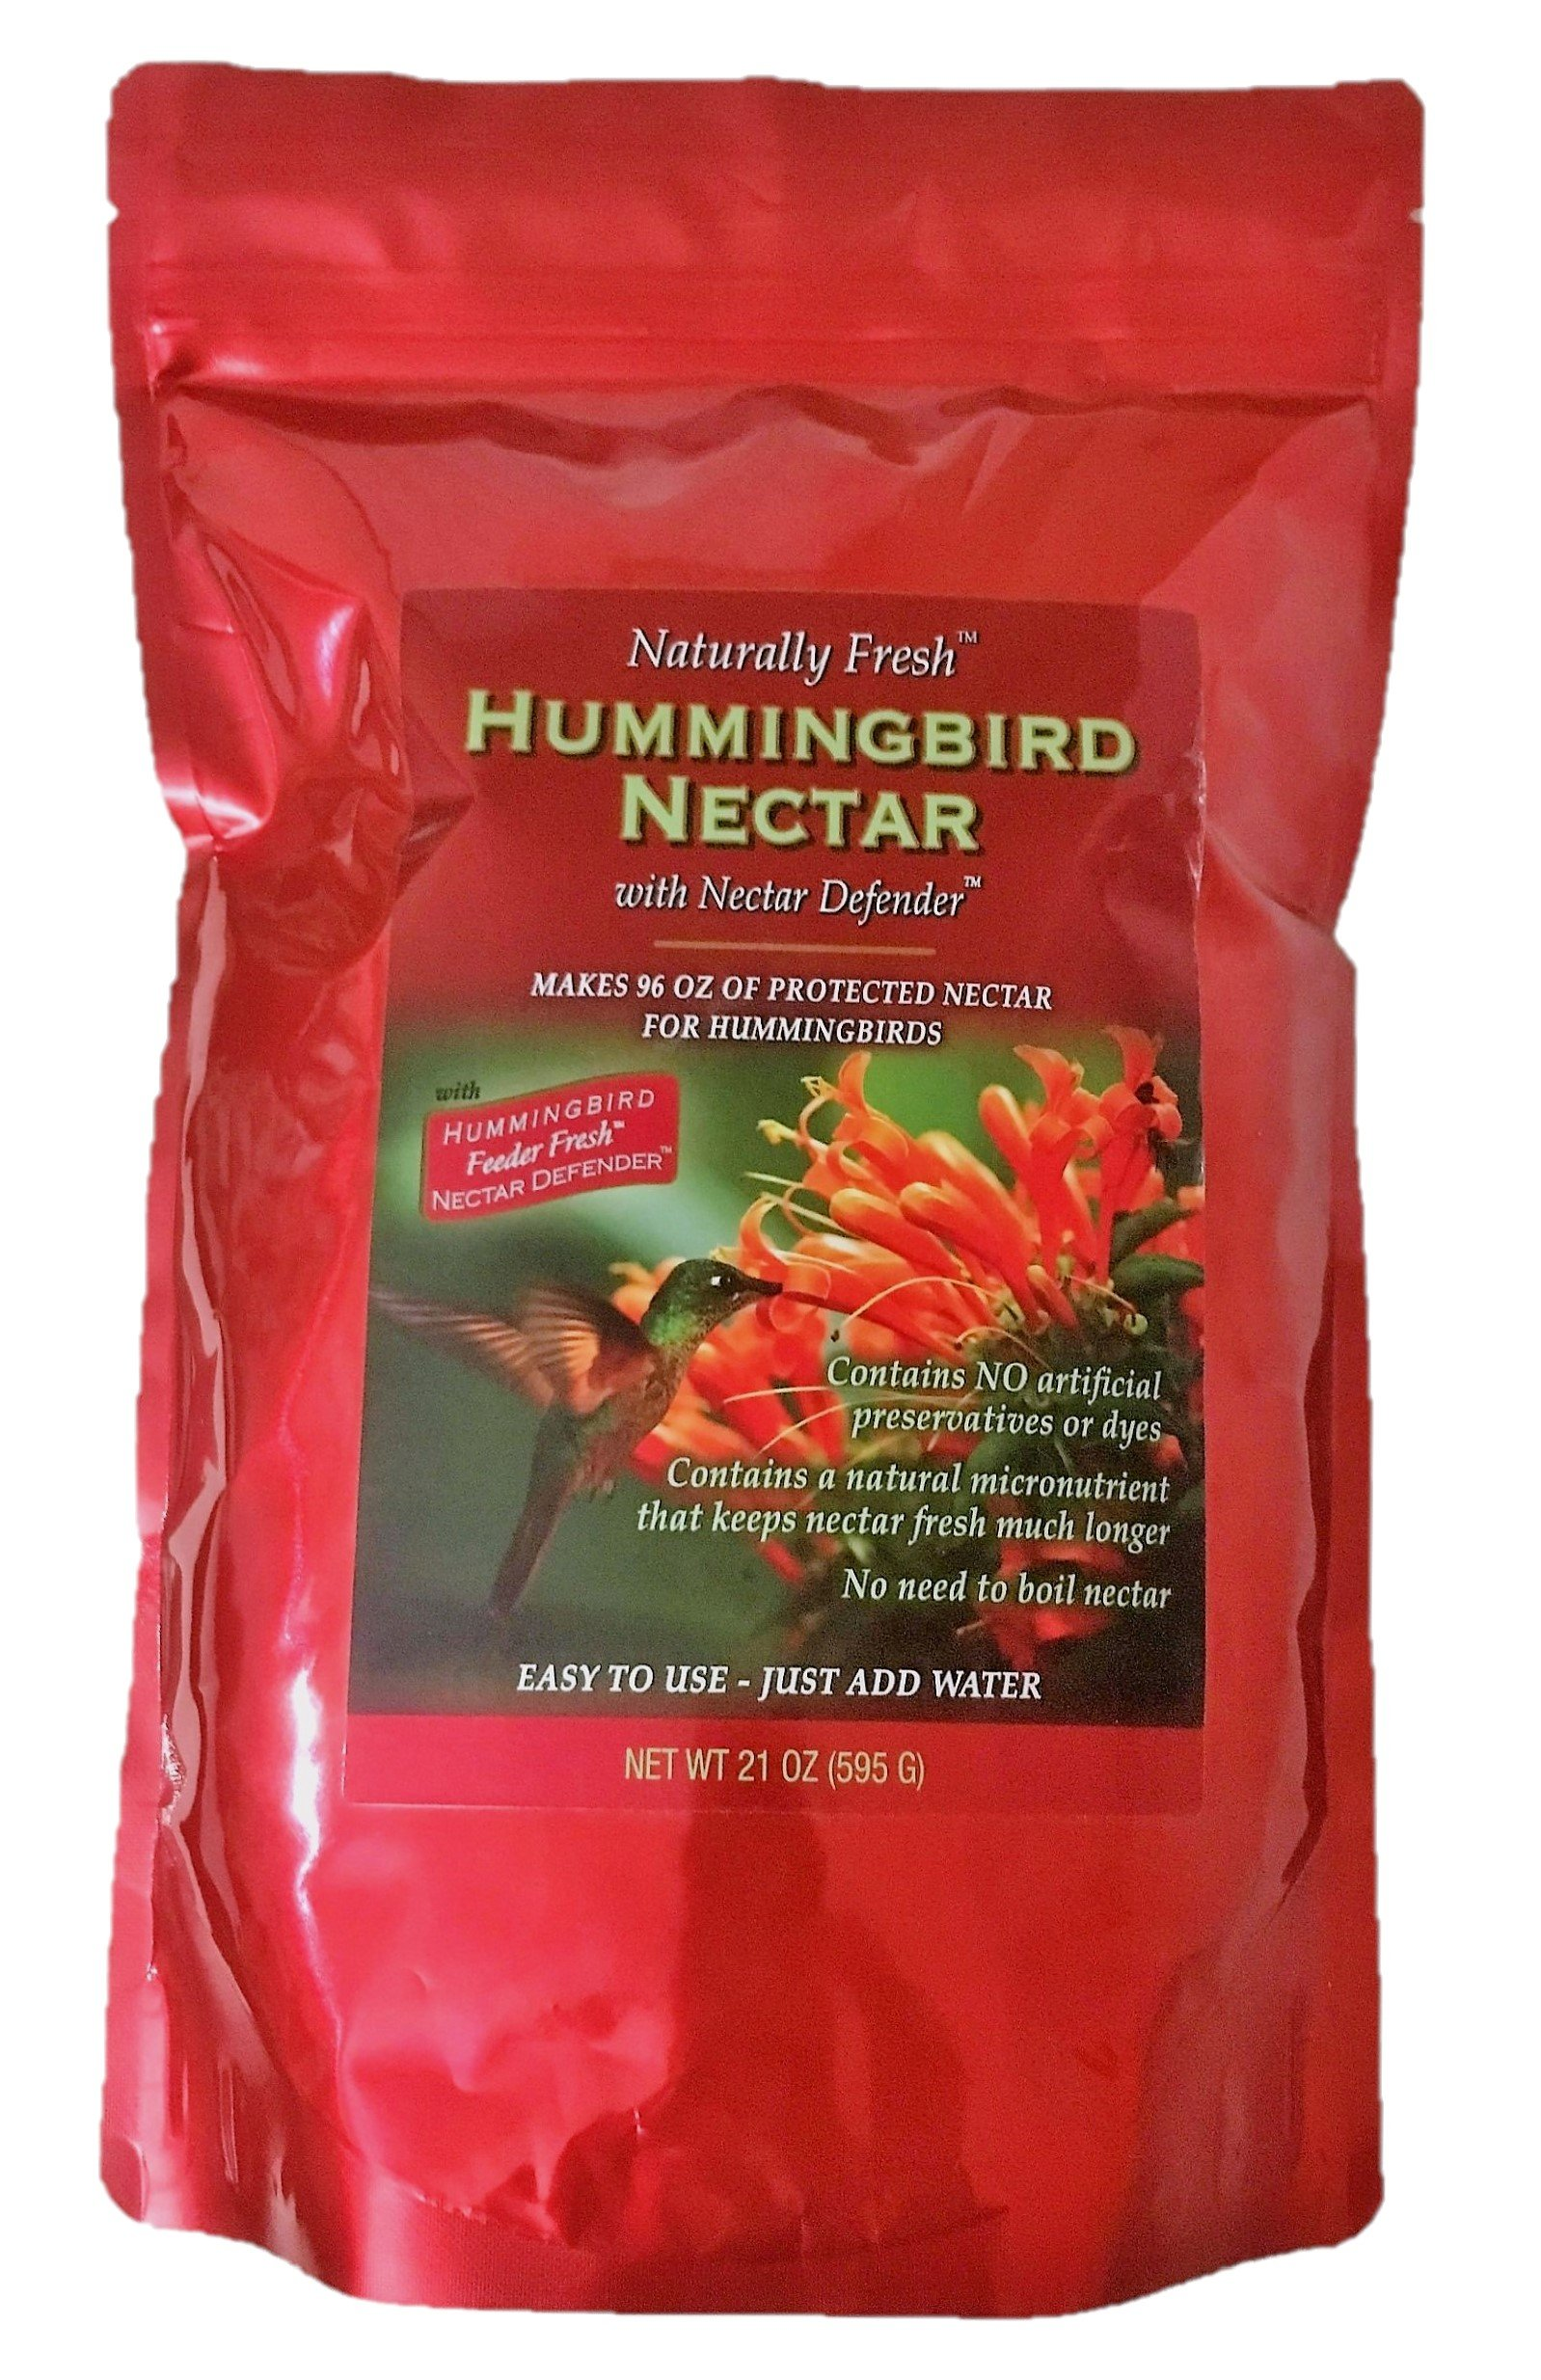 Naturally Fresh Hummingbird Nectar with Nectar Defender, A Powder Food Mix with Long Lasting Results, Makes 96 ounces of Clear Feeder Sweetness